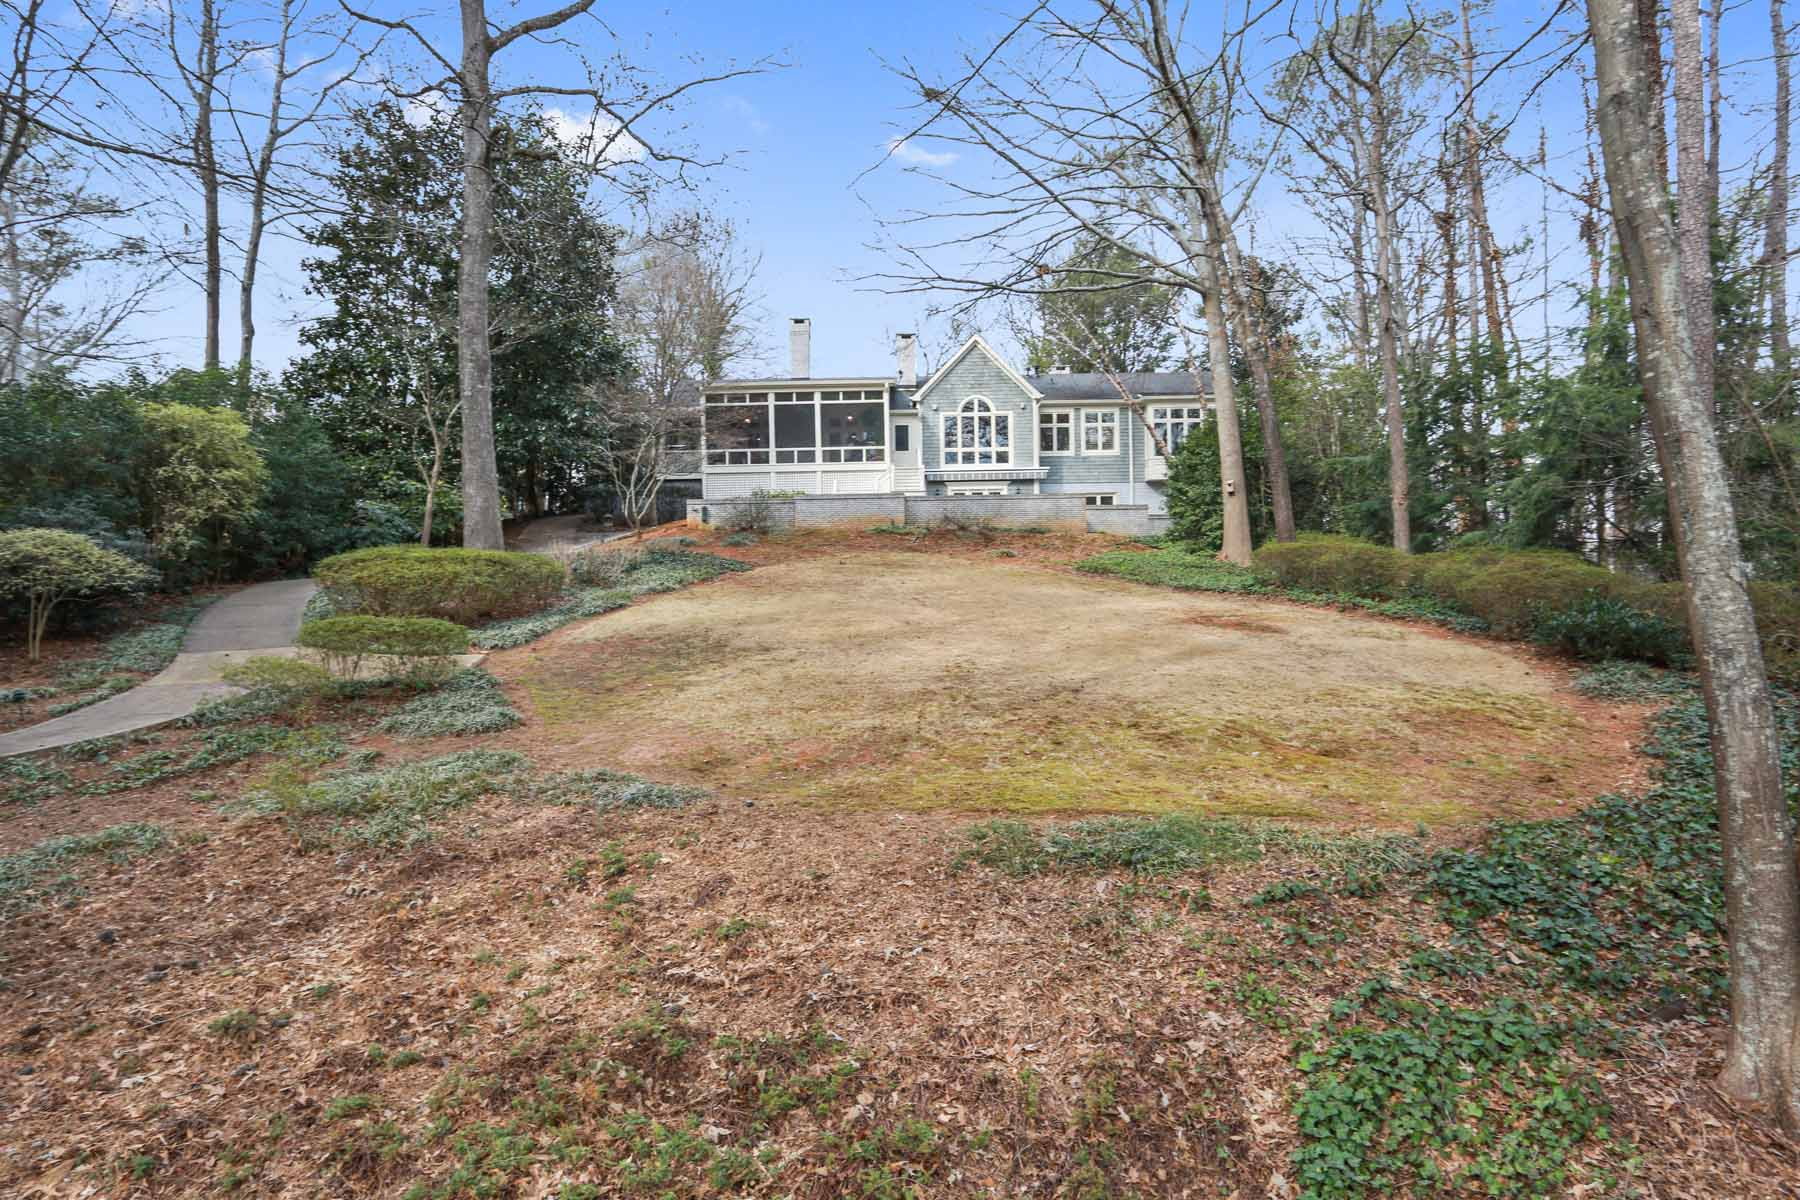 Single Family Home for Active at Serene & Private Retreat on Private Lake 1591 Huntingdon Trail Atlanta, Georgia 30350 United States